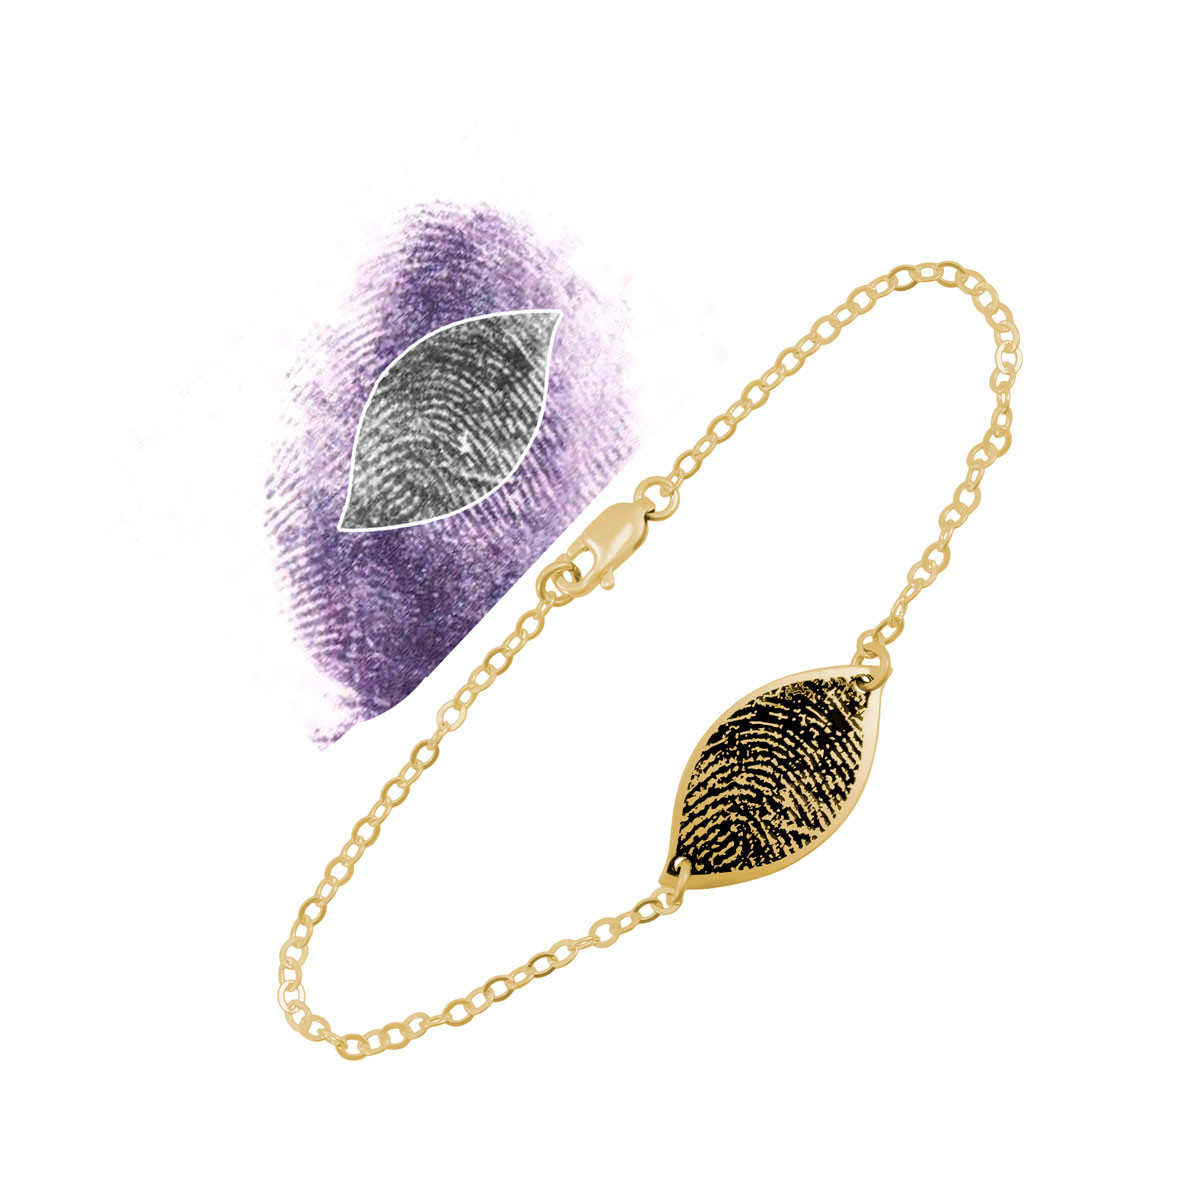 Custom fingerprint petal bracelet in gold, with the fingerprint used to create it